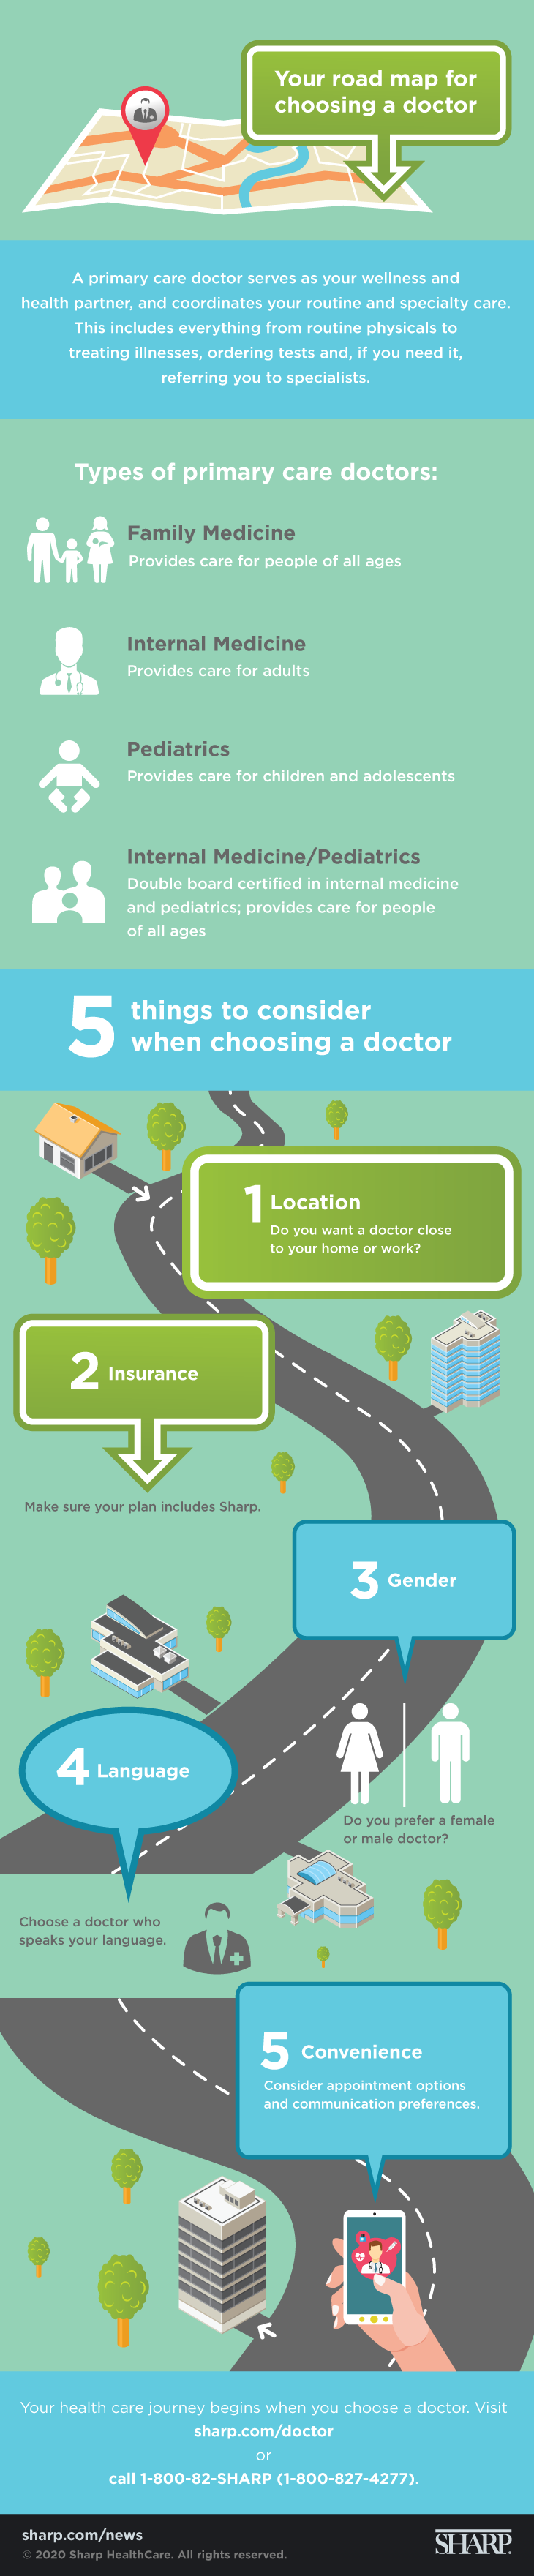 Road map to finding a doctor infographic 030420 UPDATED PNG